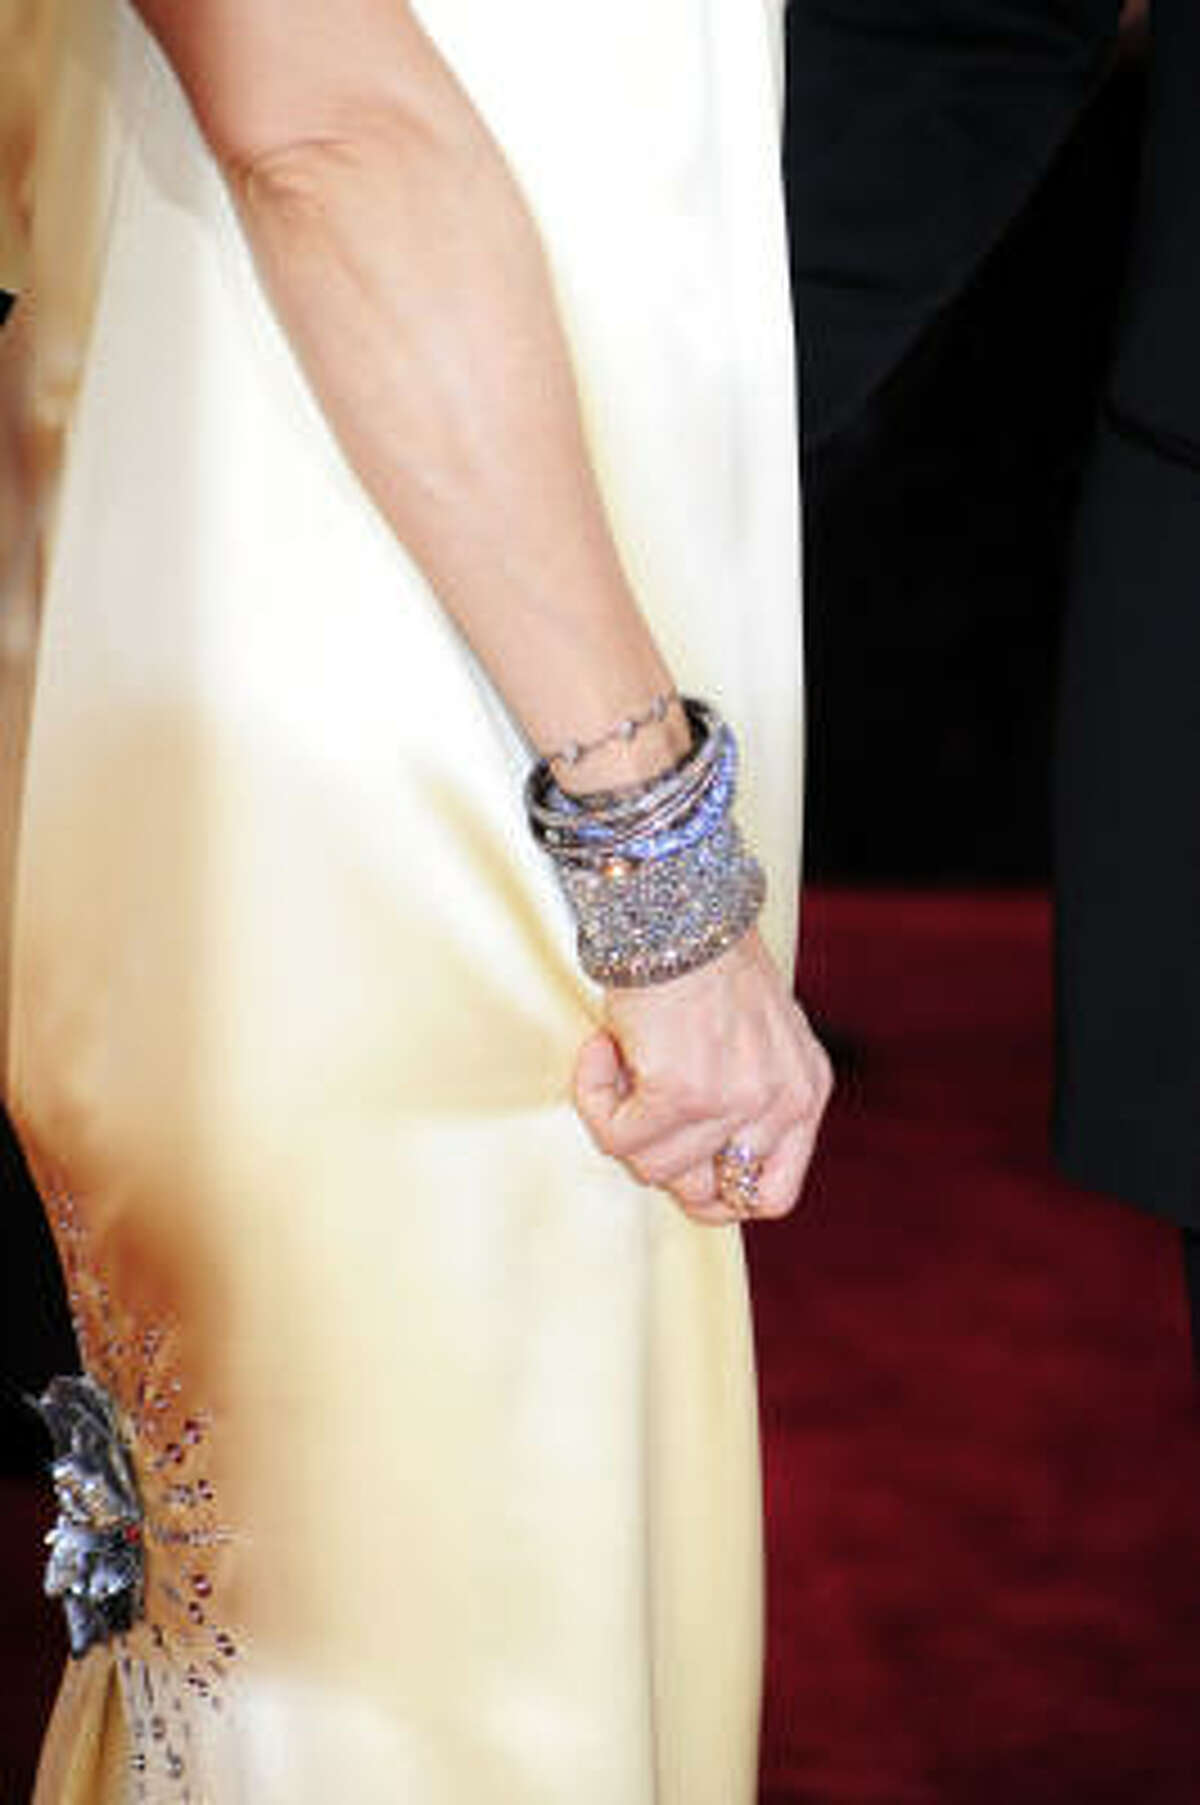 And the bracelets go perfectly with the gown.